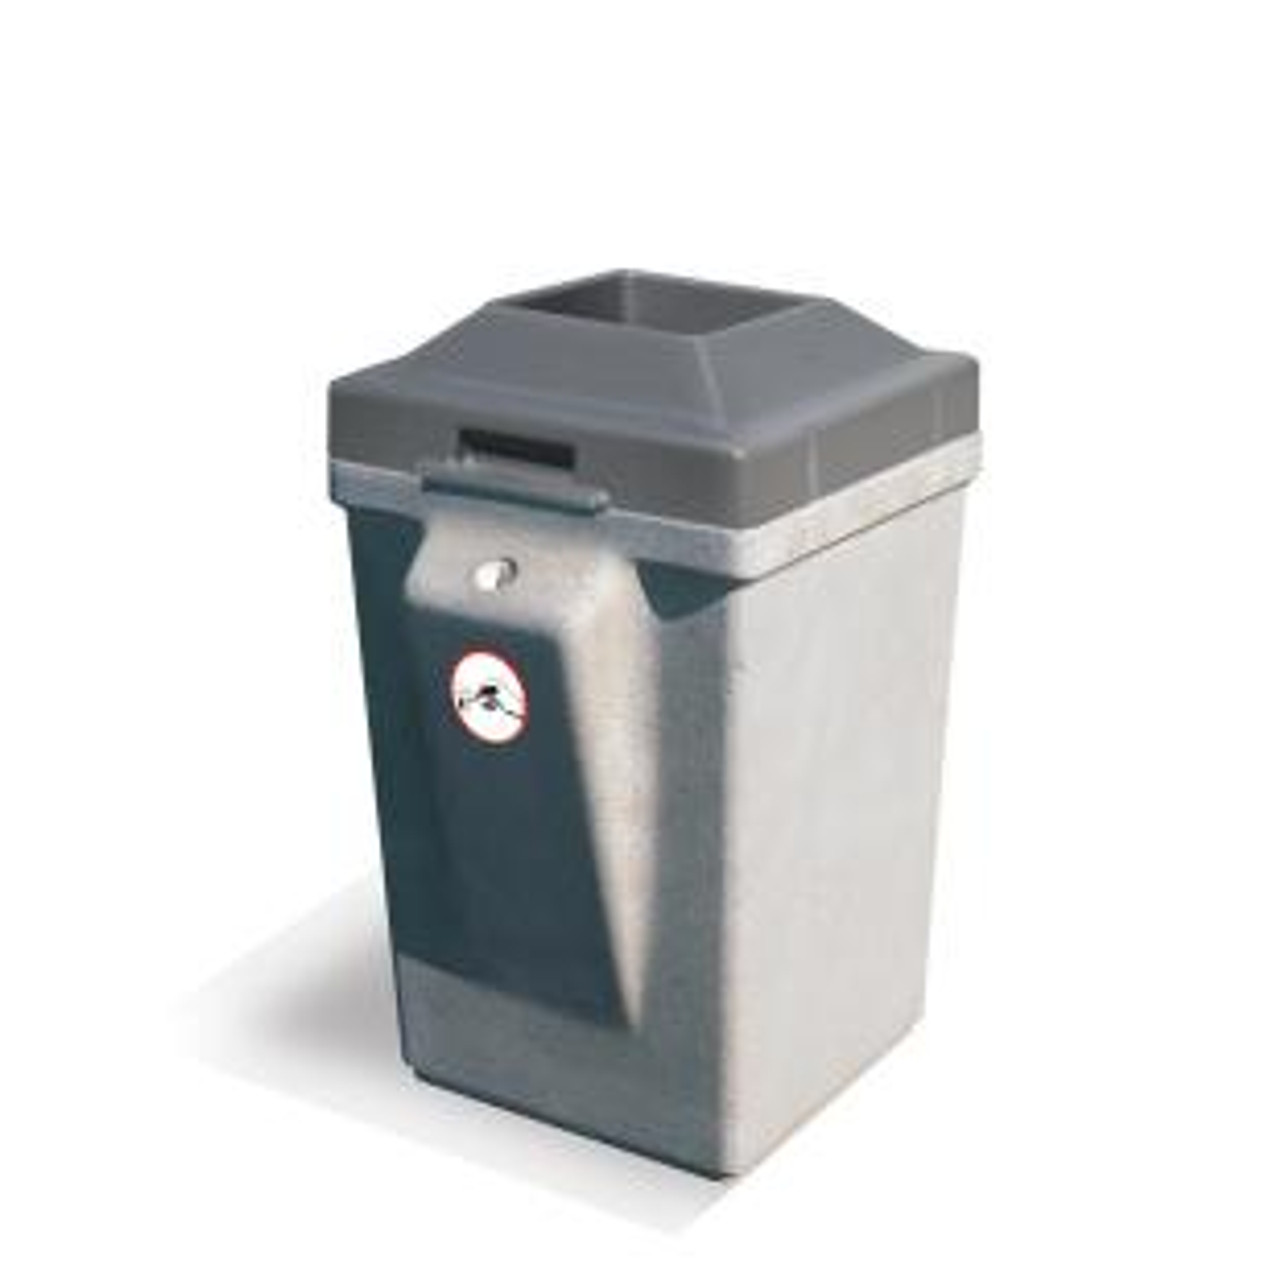 30 Gallon Concrete Outdoor Smokeless Ash Trash Container with Pitch In Lid